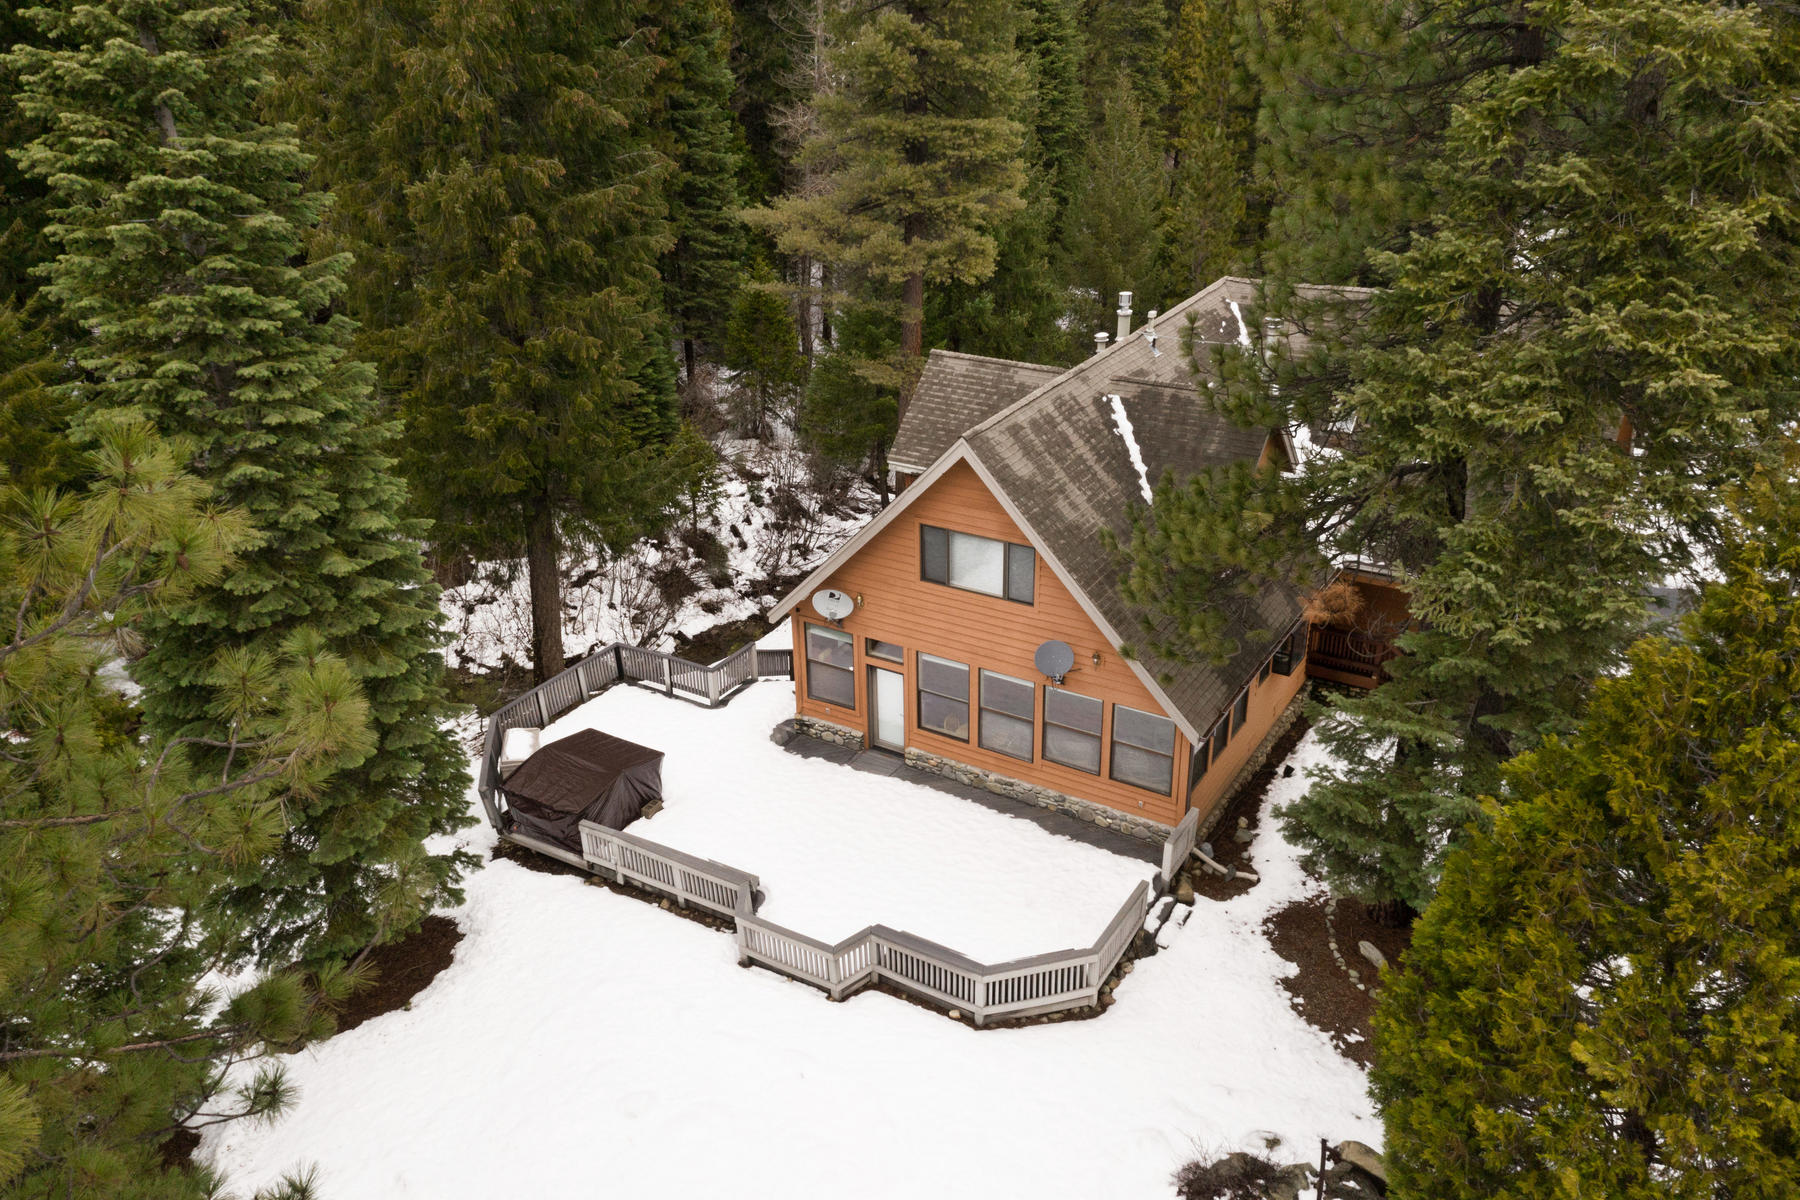 Additional photo for property listing at 1201 Smith Creek Road, Graeagle, CA 1201 Smith Creek Road Graeagle, California 96103 United States